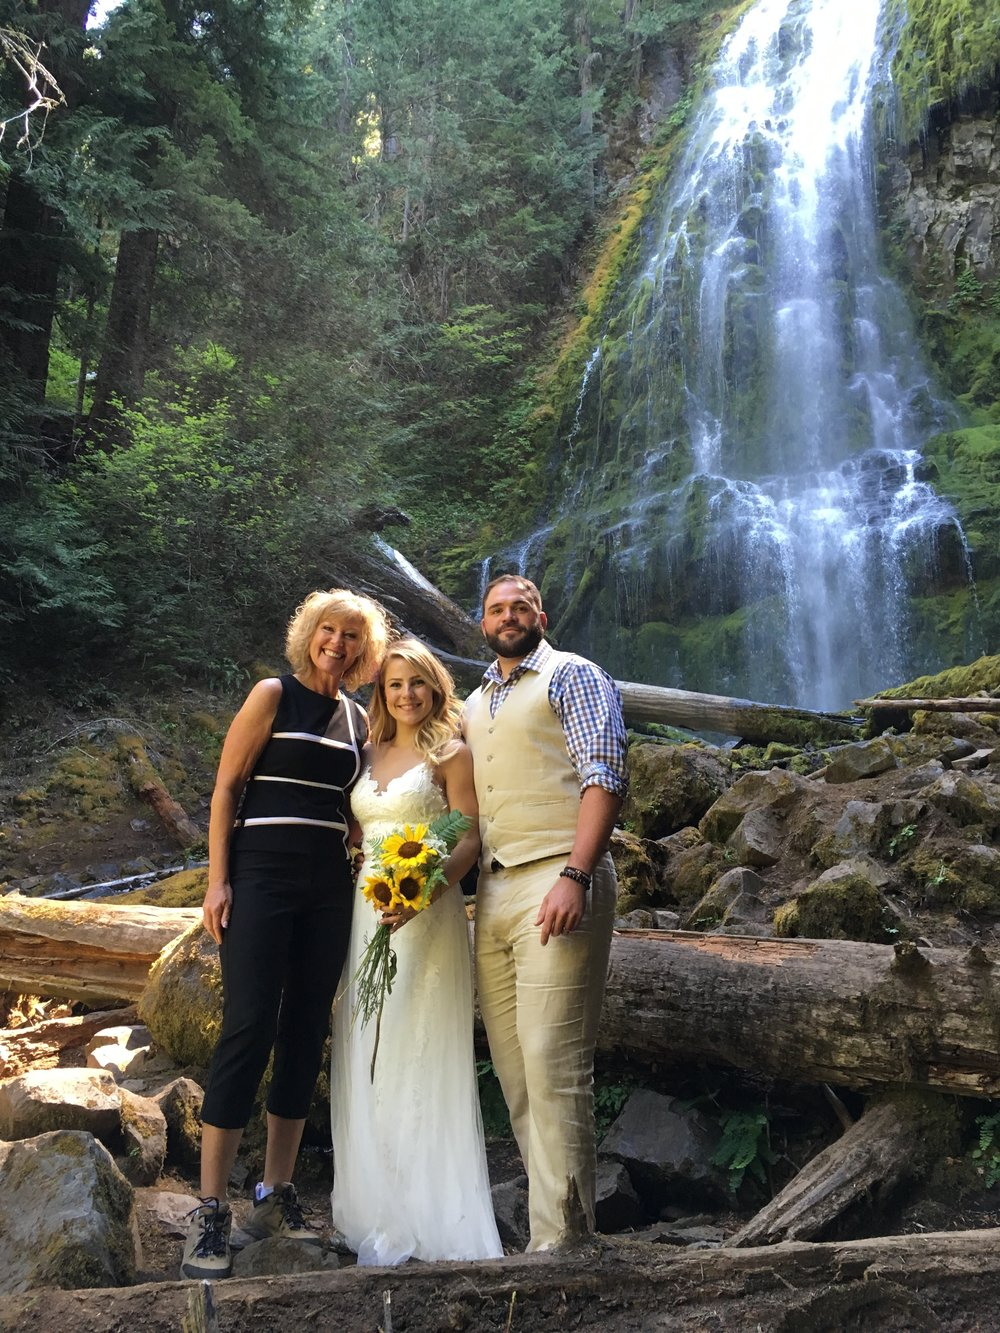 Duncan officiating a wedding in Oregon's beautiful outdoors